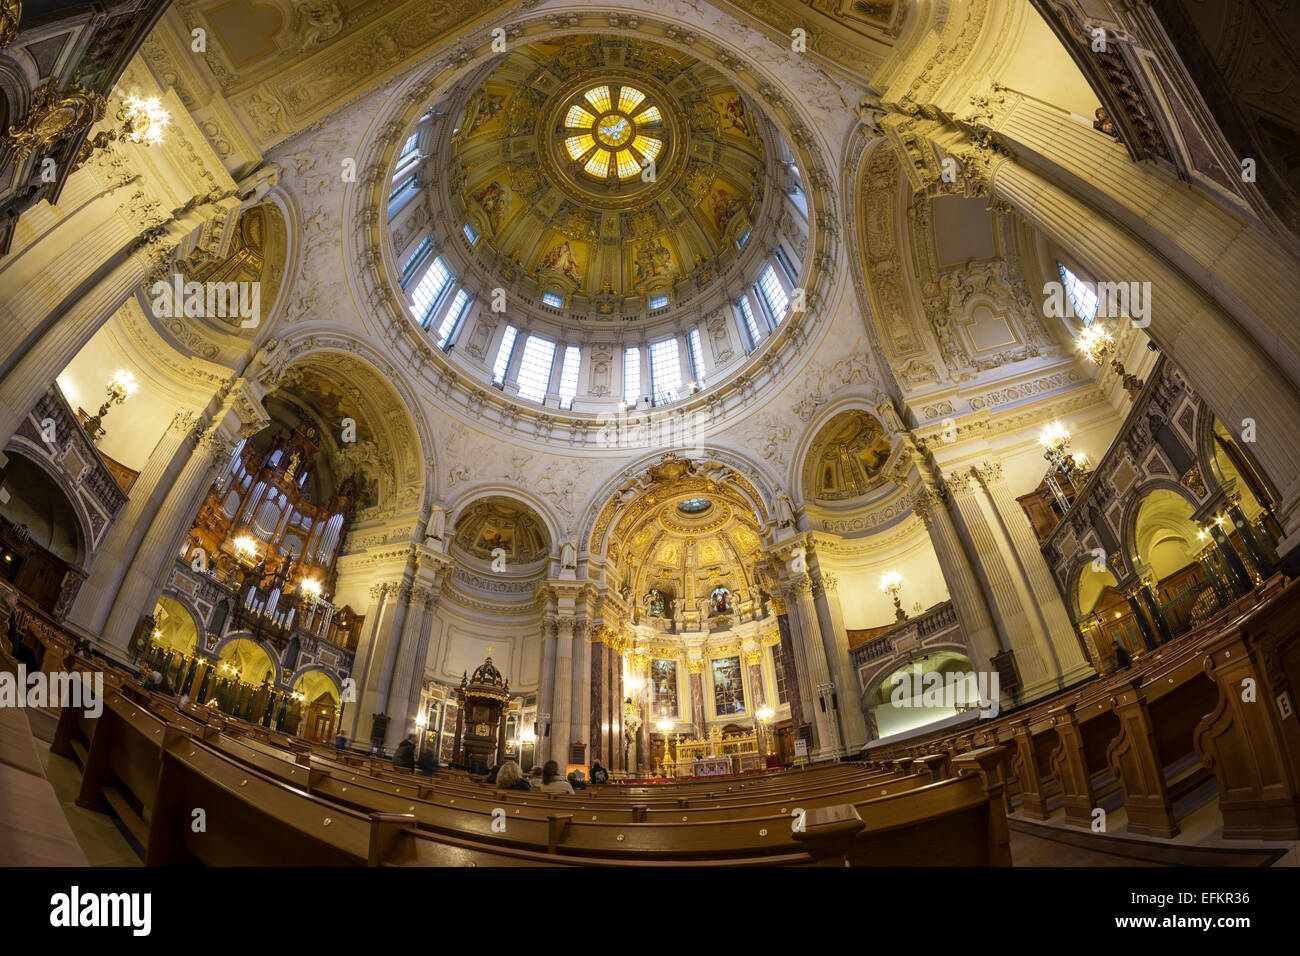 Ceiling of Dome Church in Berlin Cathedral - Stock Image